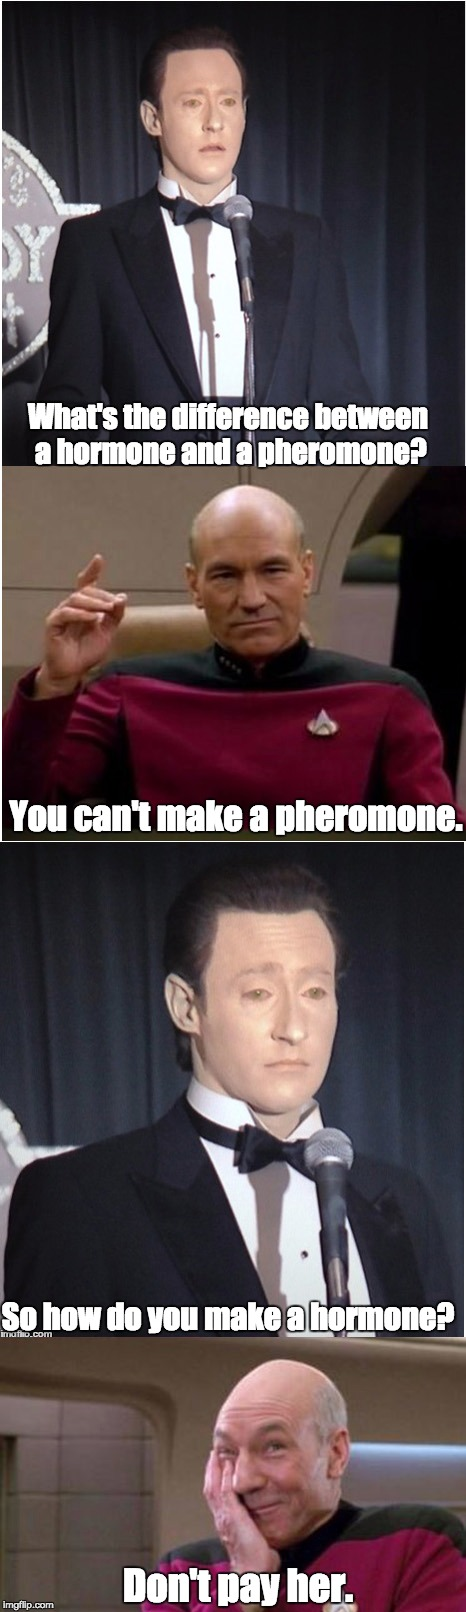 Difference between hormone and pheromone. | What's the difference between a hormone and a pheromone? So how do you make a hormone? You can't make a pheromone. Don't pay her. | image tagged in picard,data | made w/ Imgflip meme maker